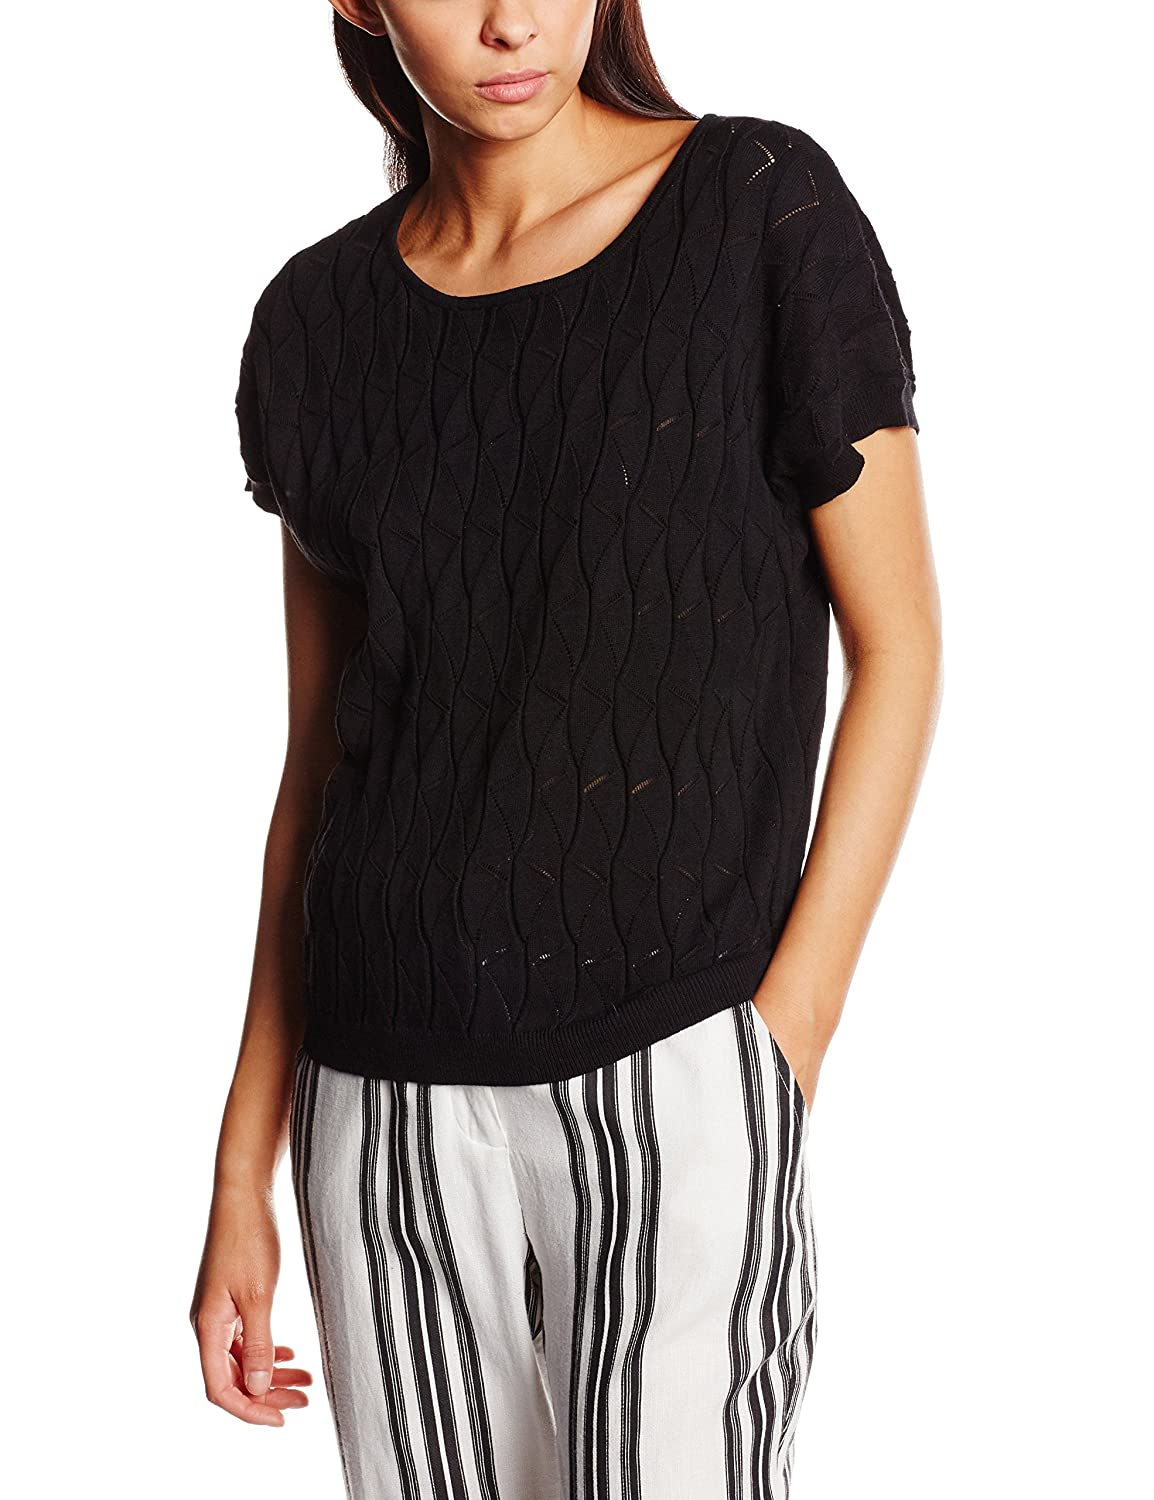 Pepaloves Sweater Pointelle Black, Jersey para Mujer